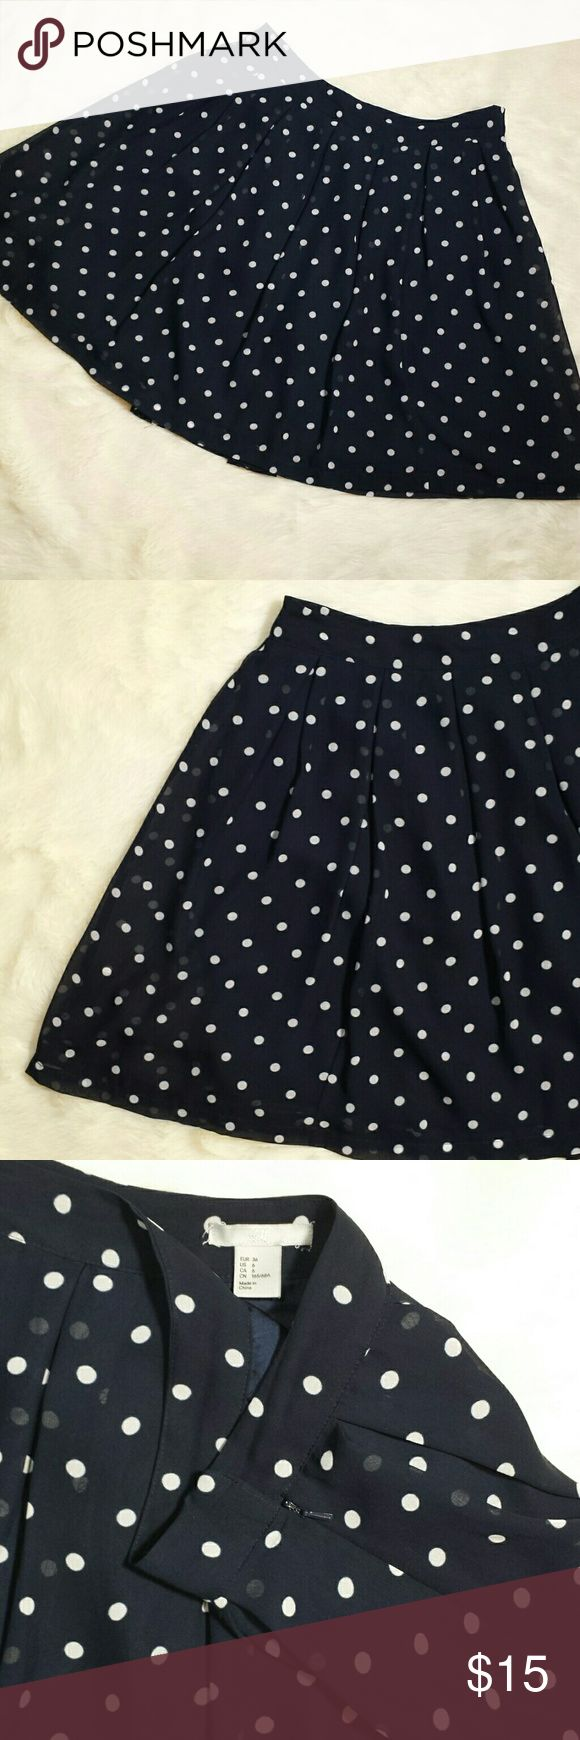 "H&M Polka Dot Pleated Skirt Size 6 Navy blue background with timeless white polka dot pattern. Pleated and a very full skirt. Side zip entry with double clasp closure. Sheer polka dot panel with fully lined solid underneath. Preowned in great condition with no rips, holes, tears or stains. Size 6.   Measurements  Waist 15"" Length 19.5"" H&M Skirts A-Line or Full"